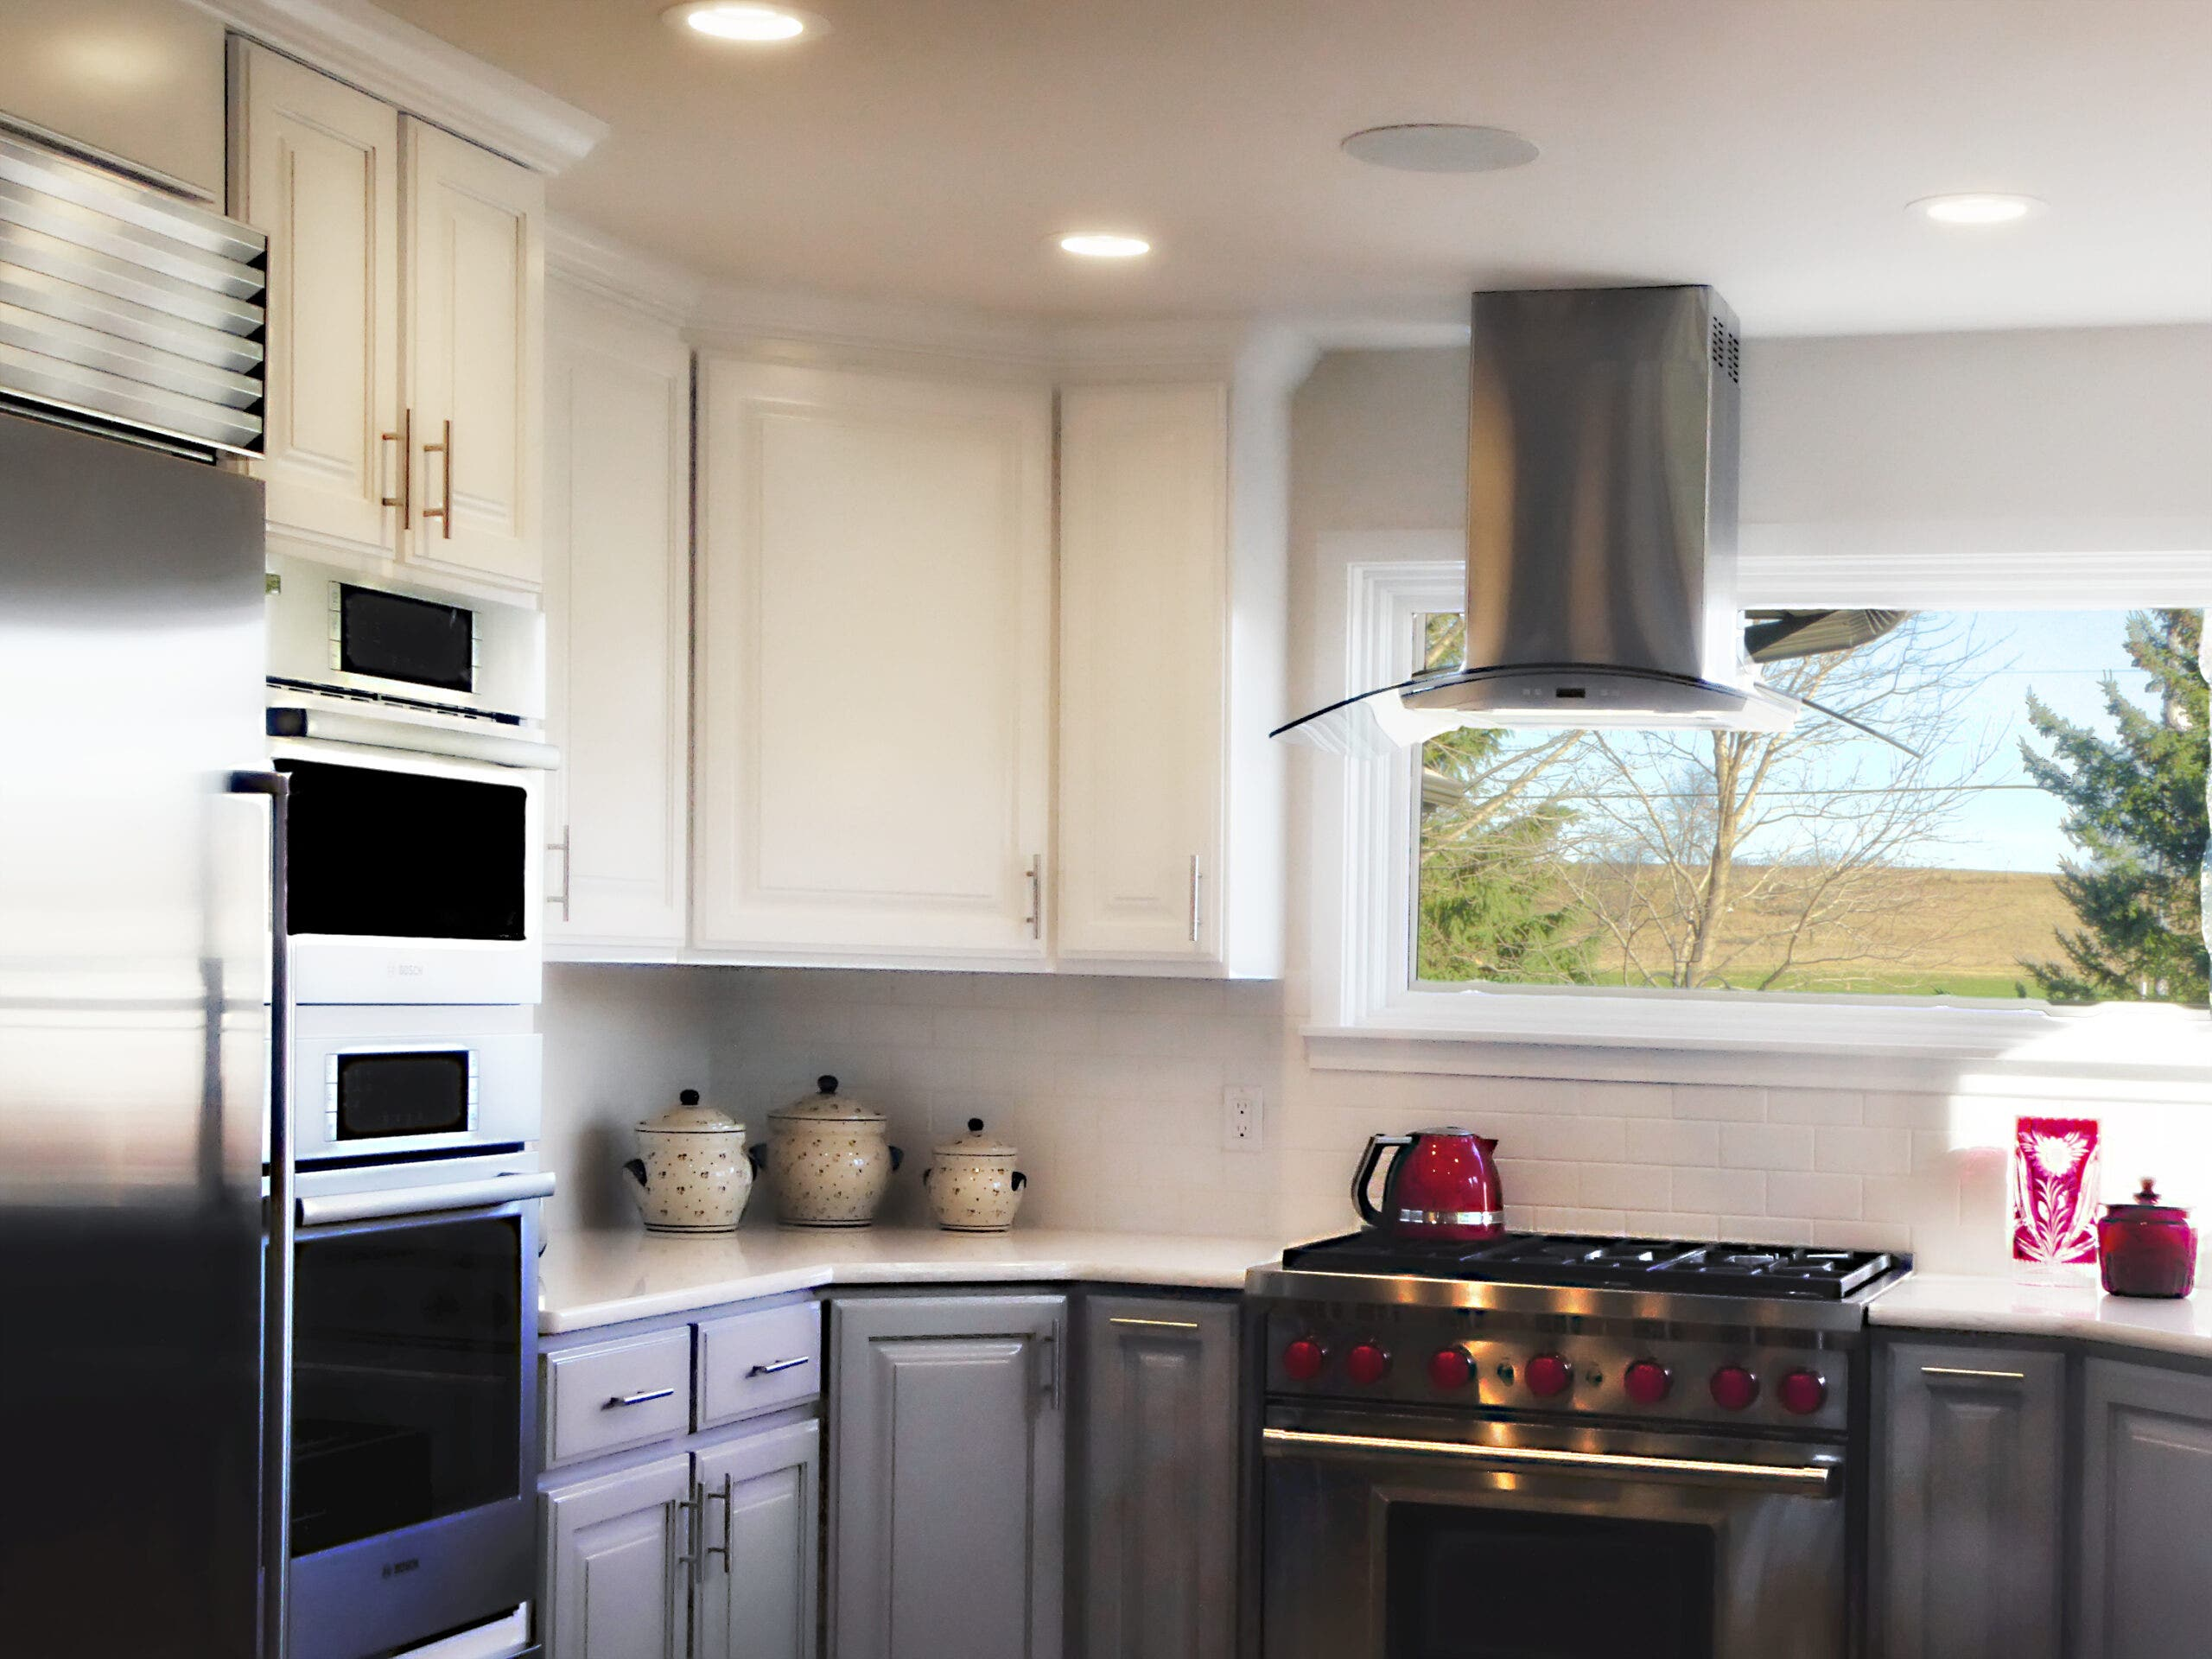 How To Clean A Black Stove Top In Just 5 Steps